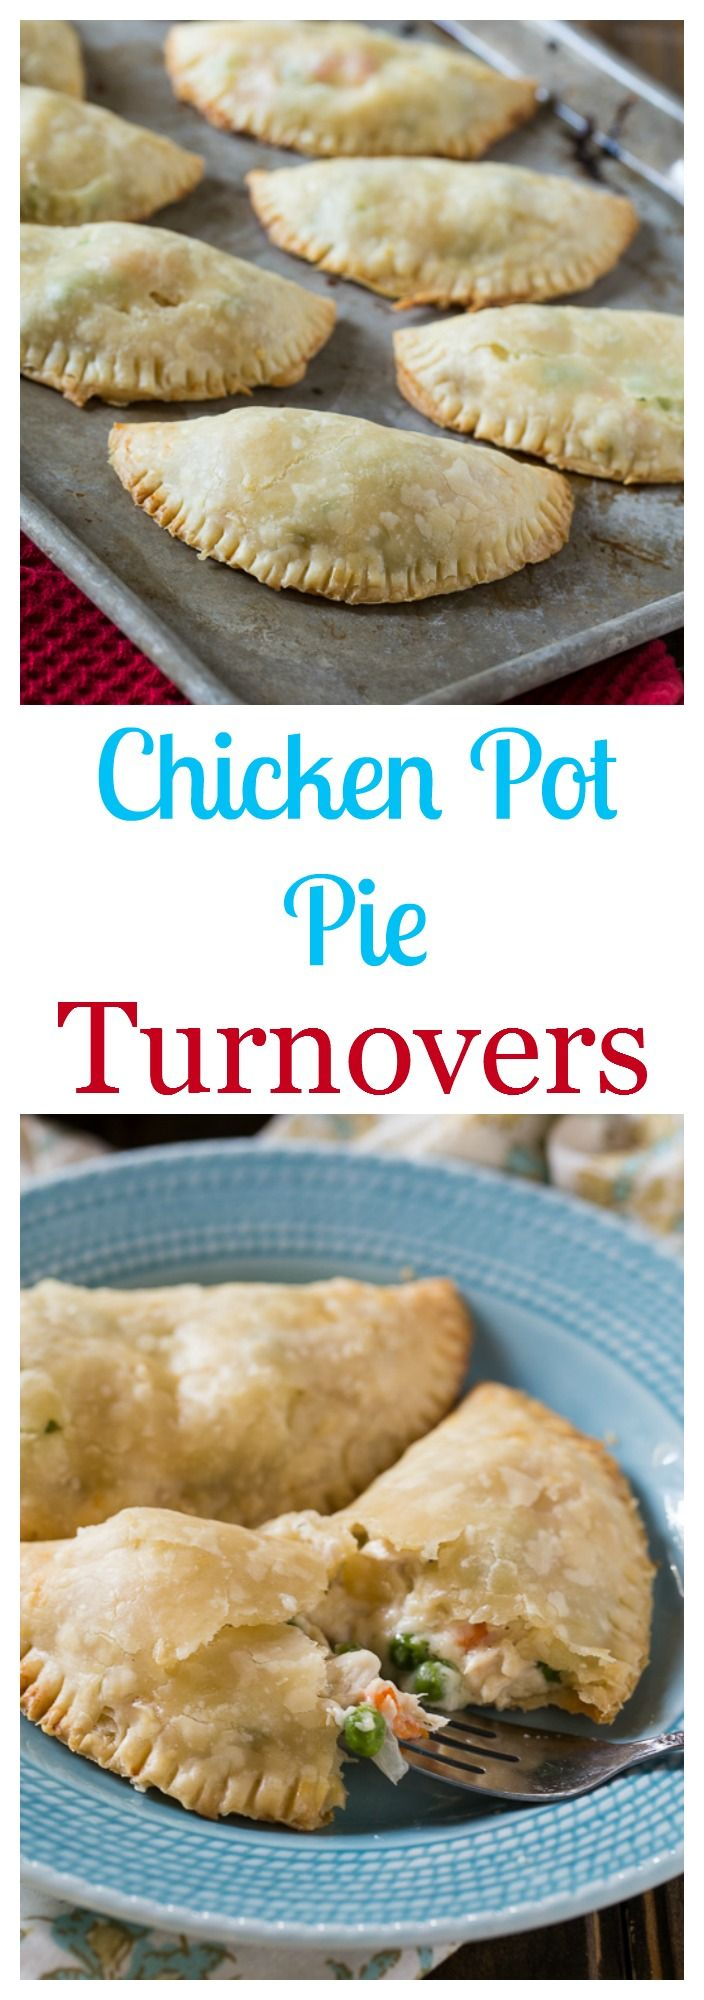 Chicken Pot Pie Turnovers | Recipe | FOOD FOR THE SOUL | Pinterest ...